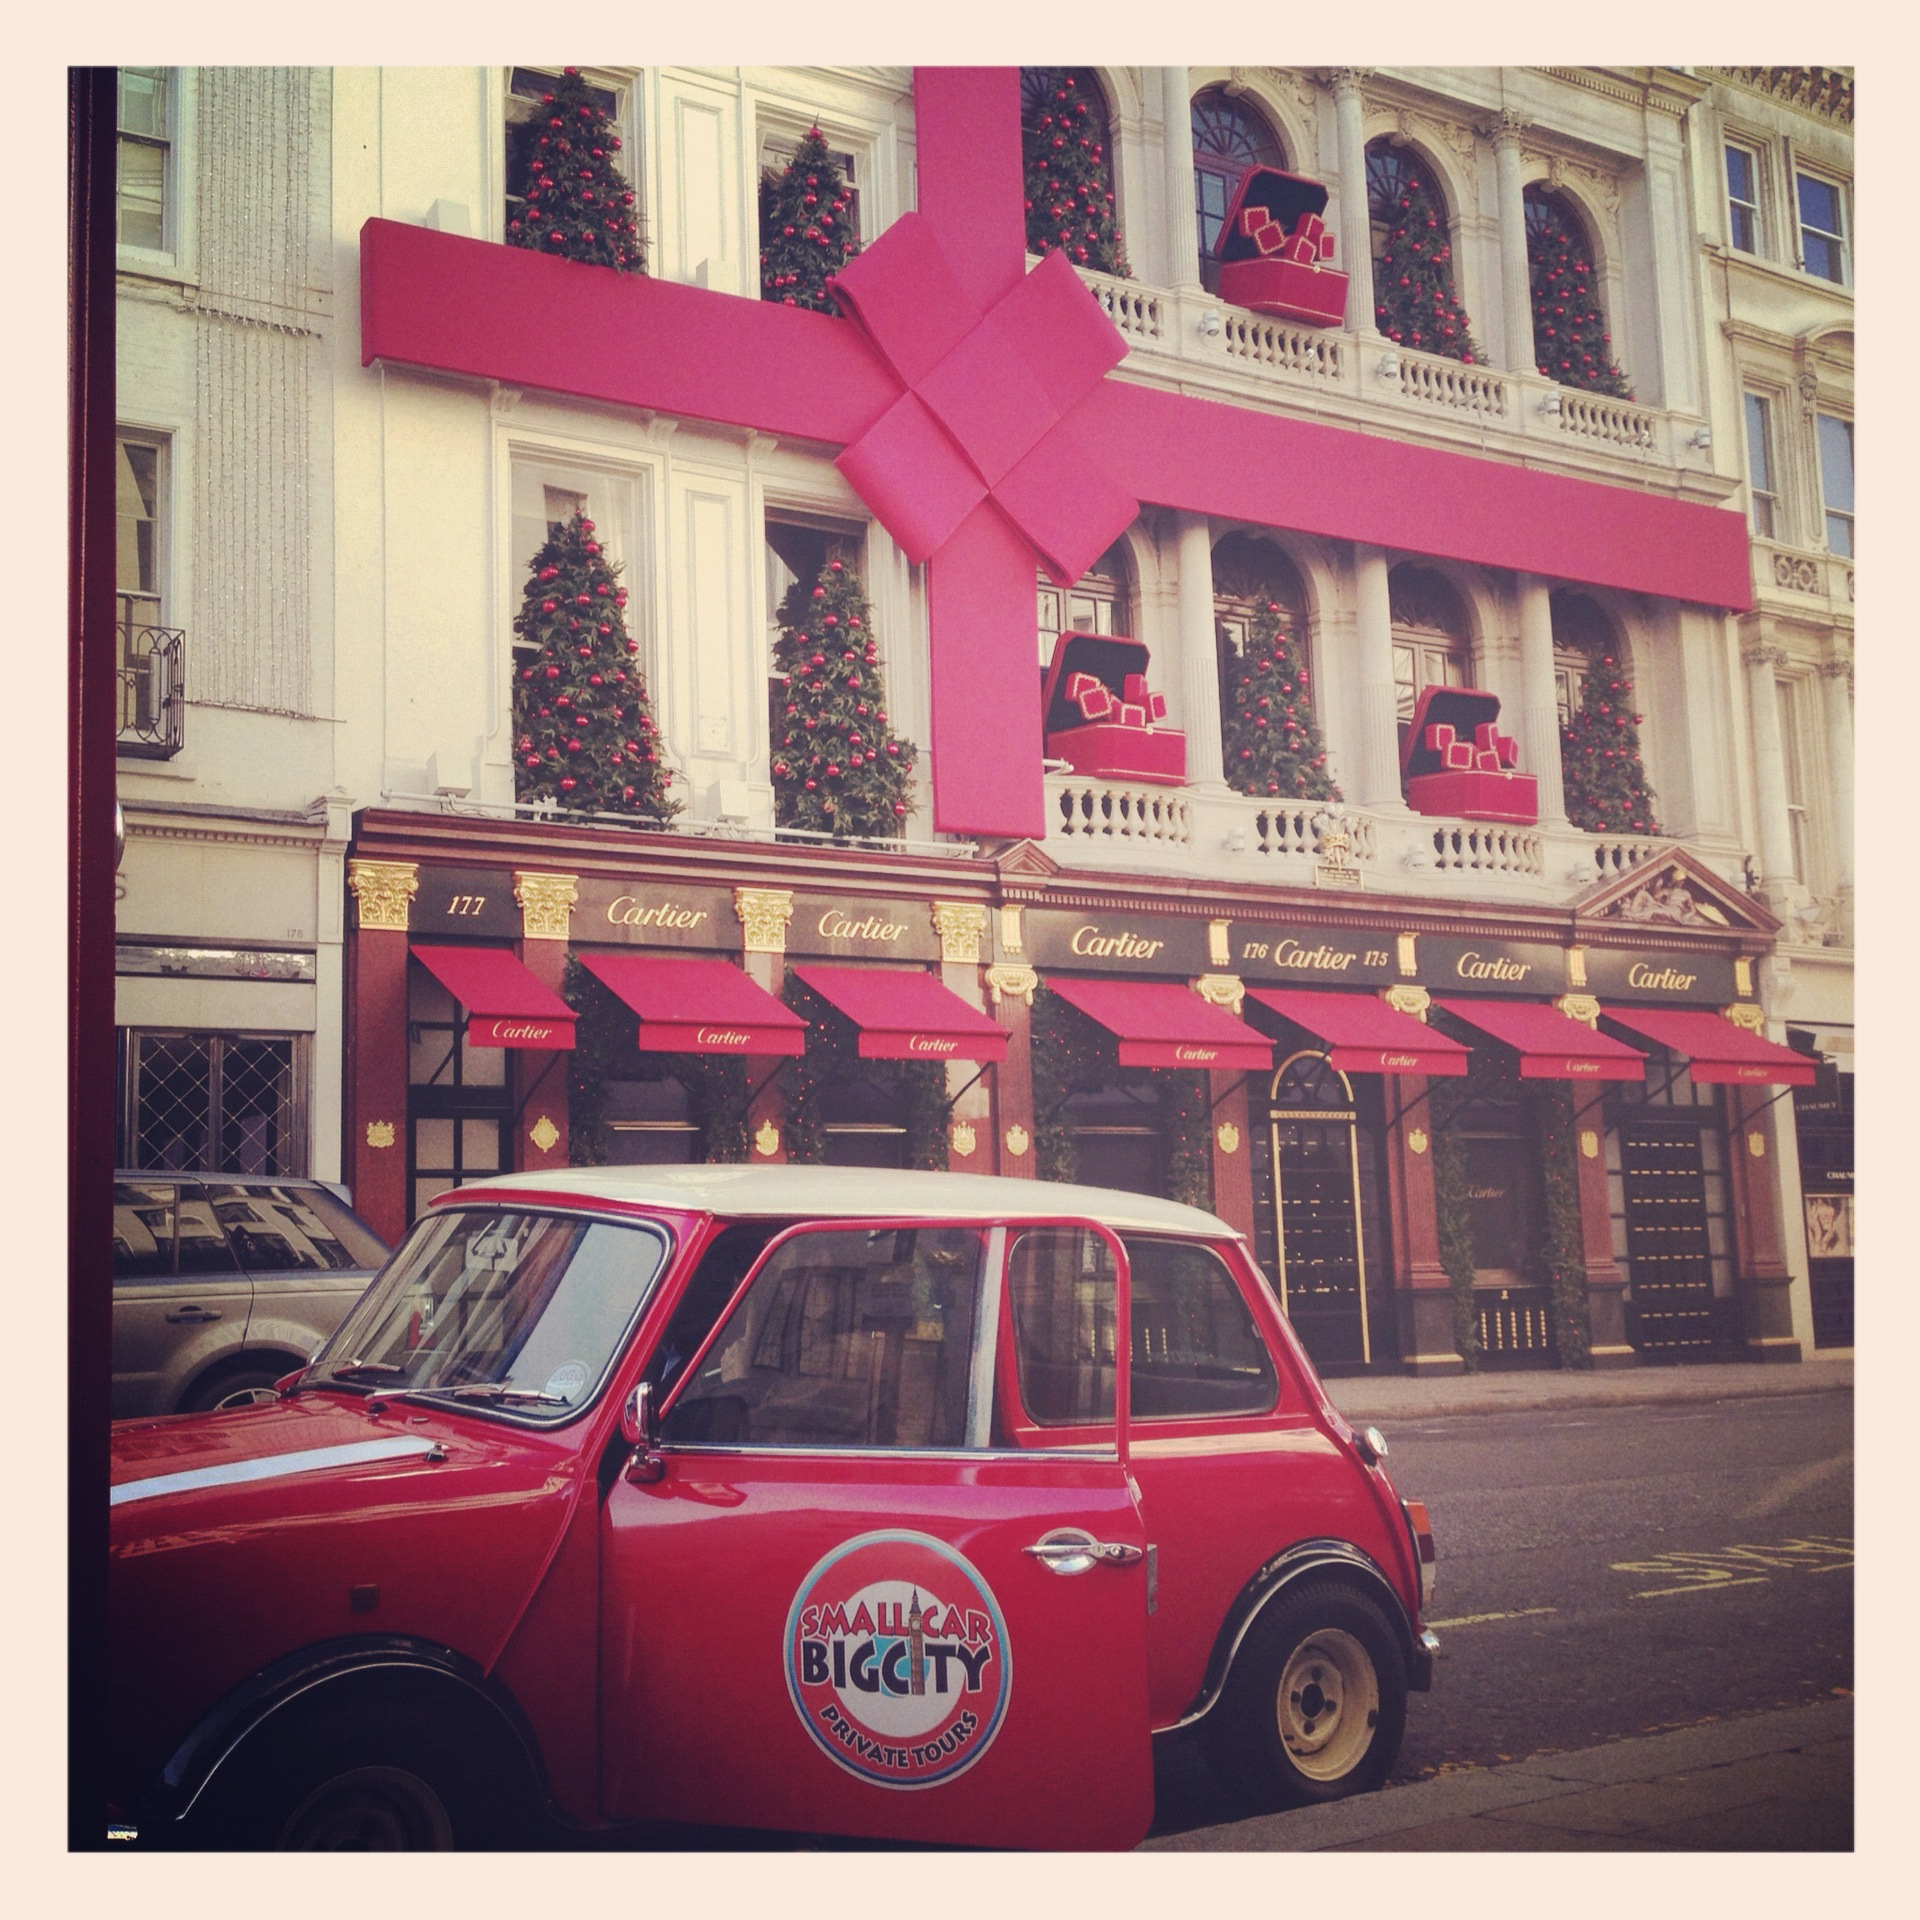 Win An Italian Job Mini Cooper Tour Of London 12 Days Of